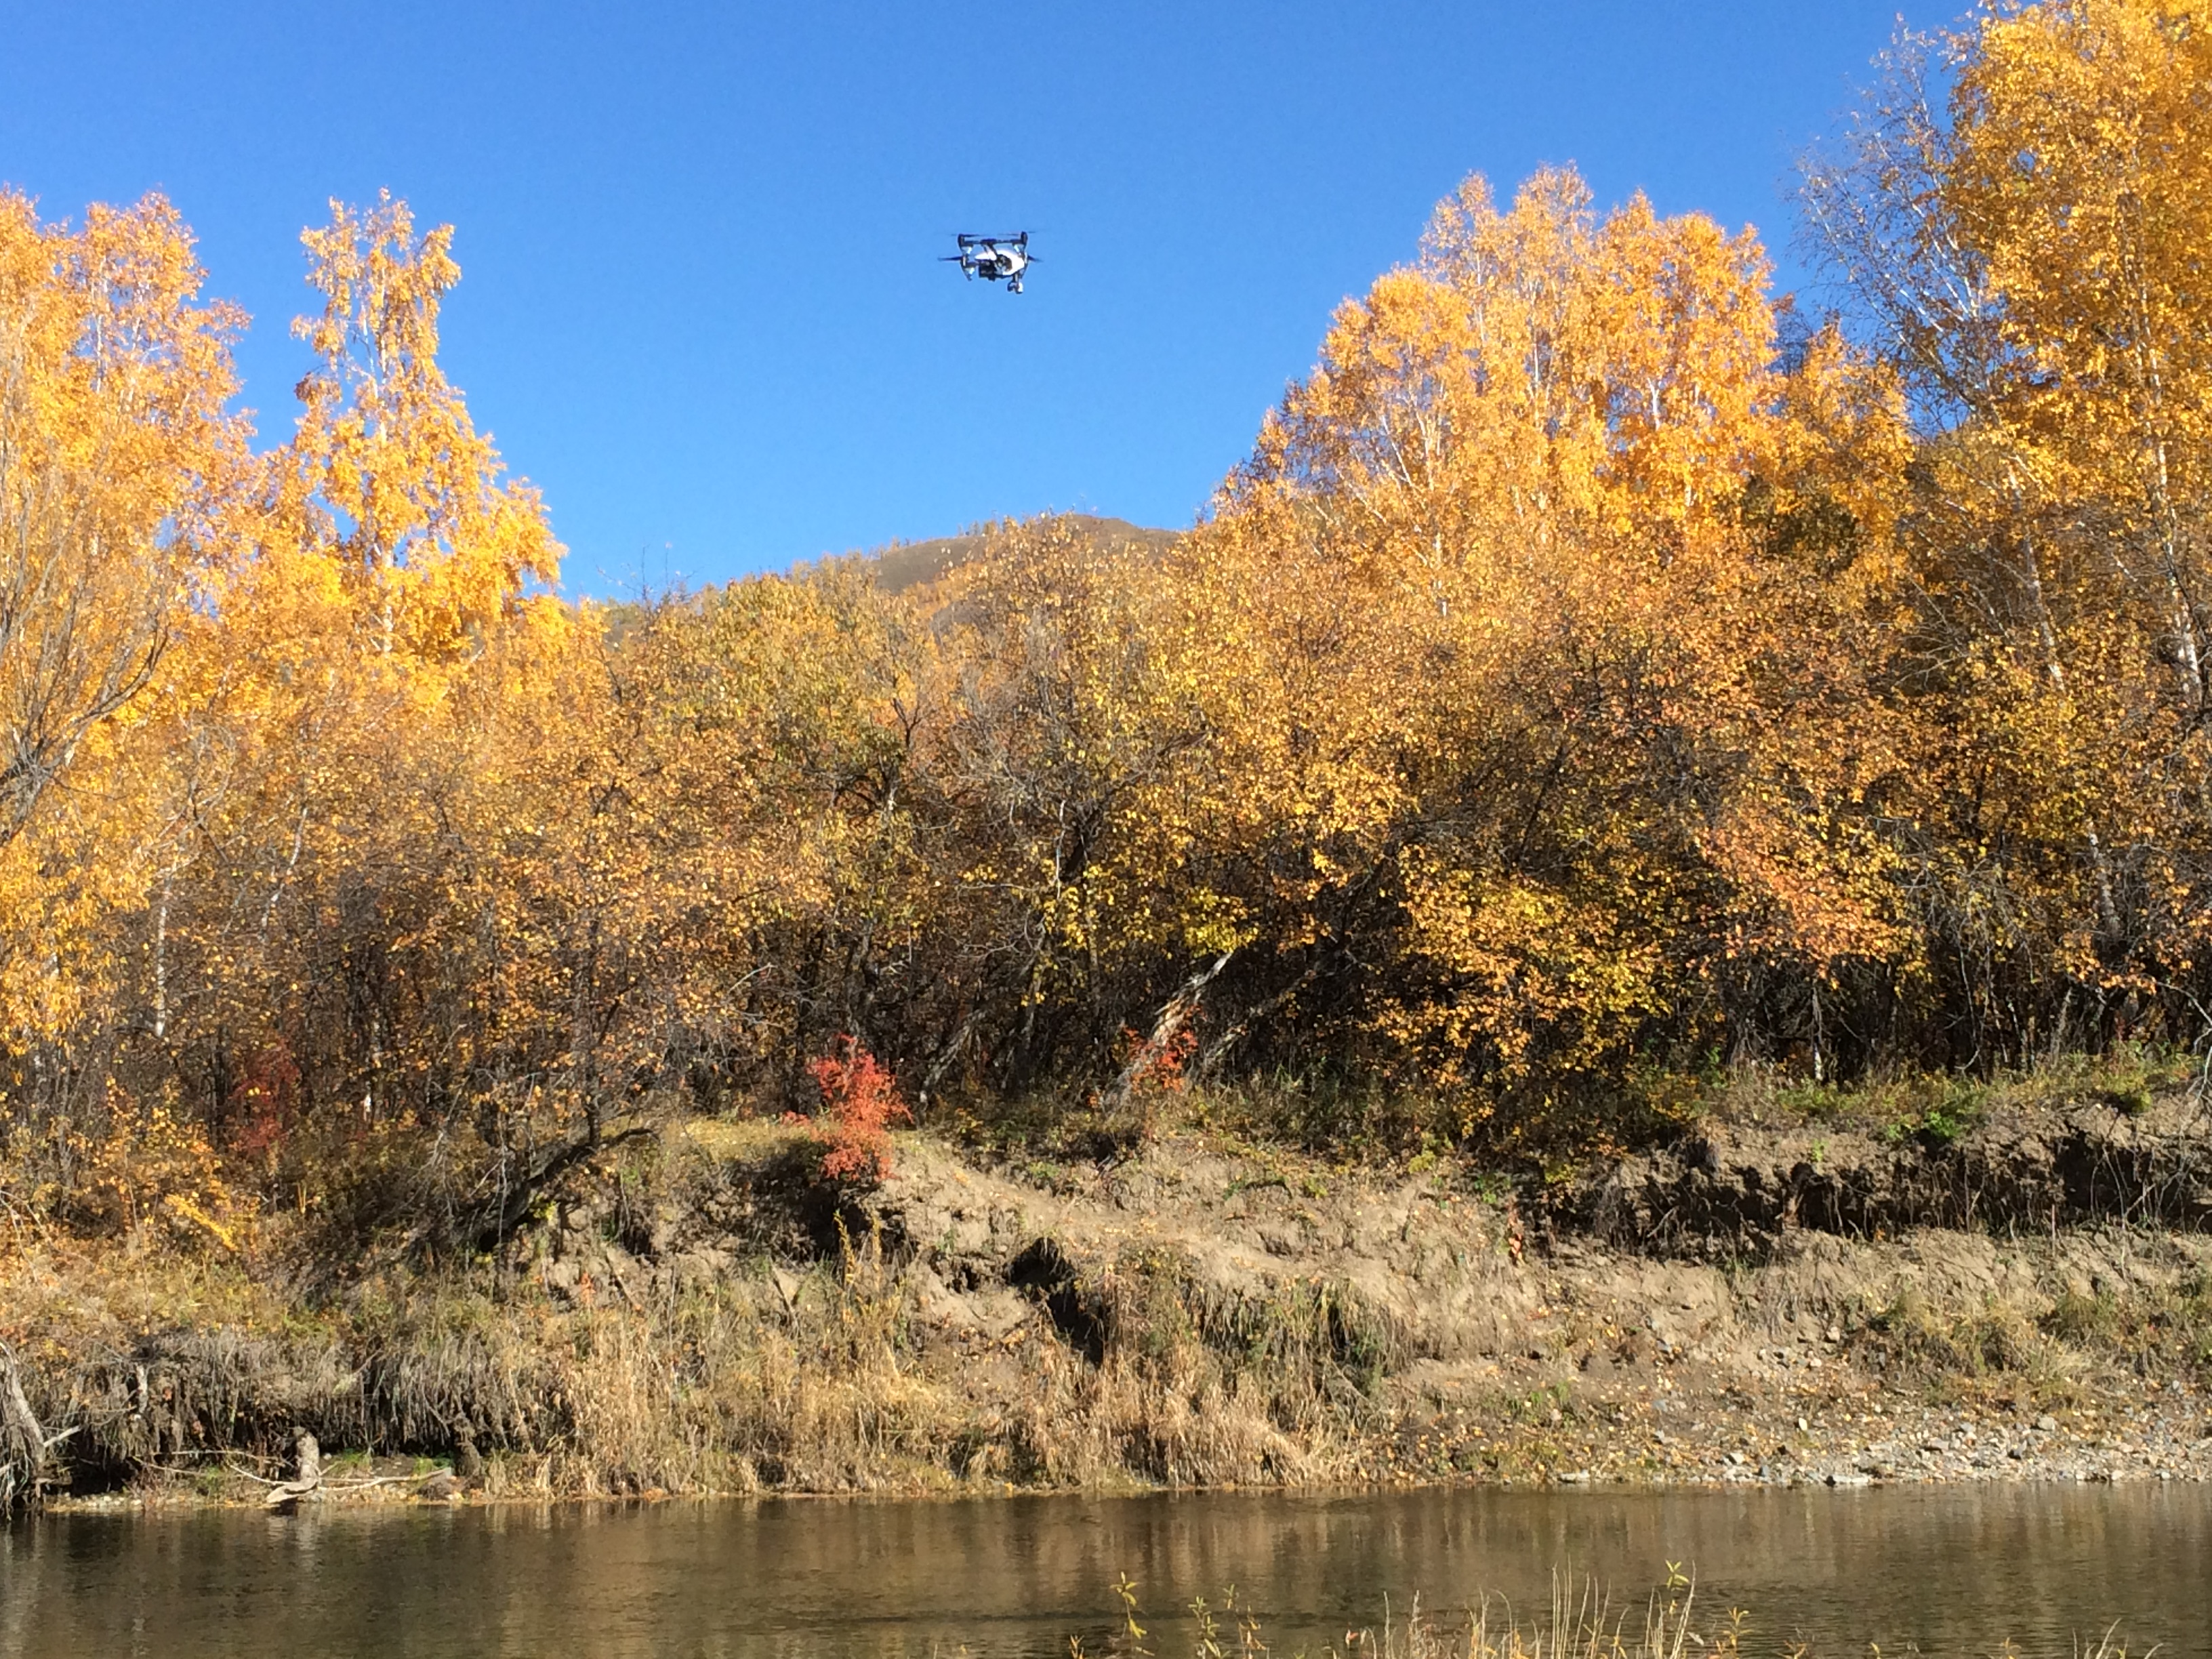 Drone over Eg River in Mongolia